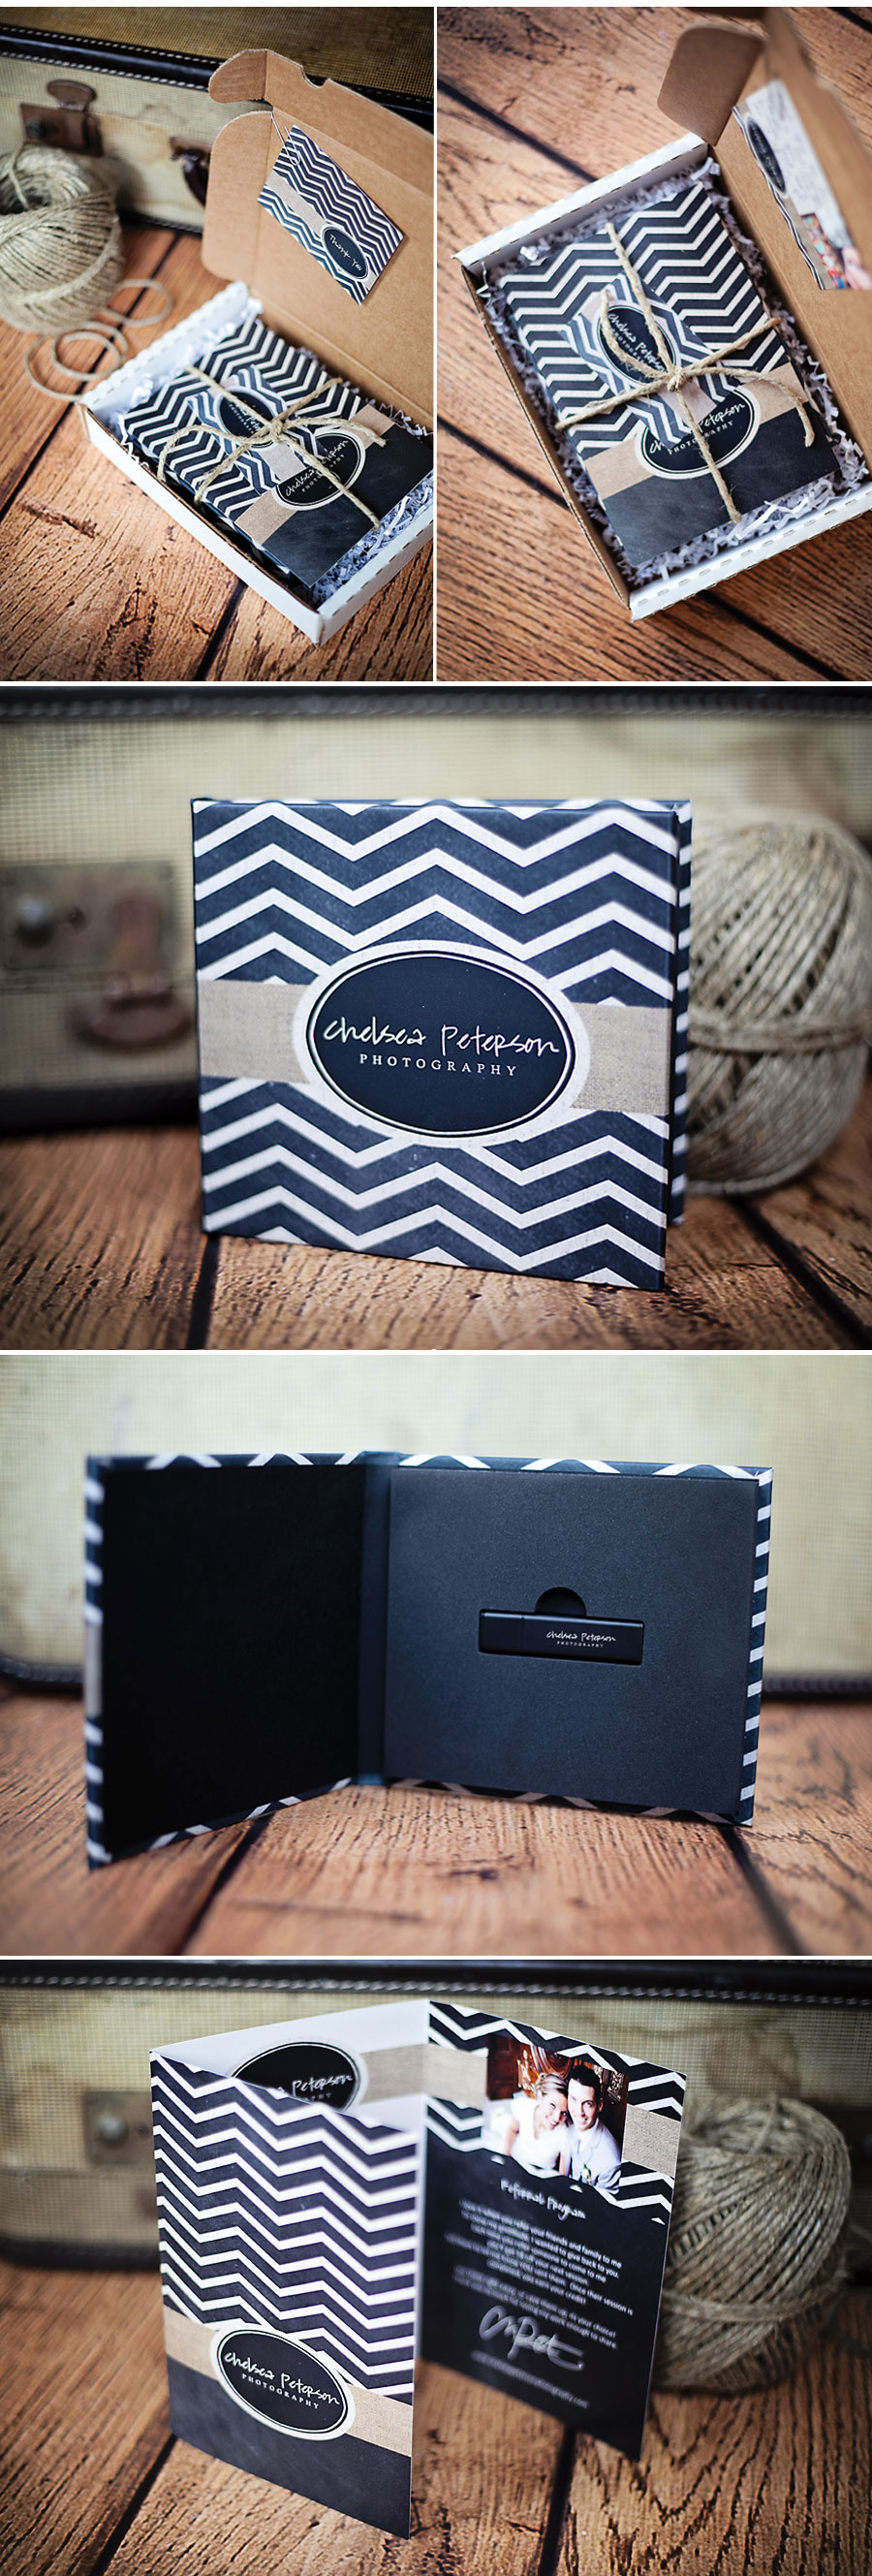 branding_packaging_utah_photographer